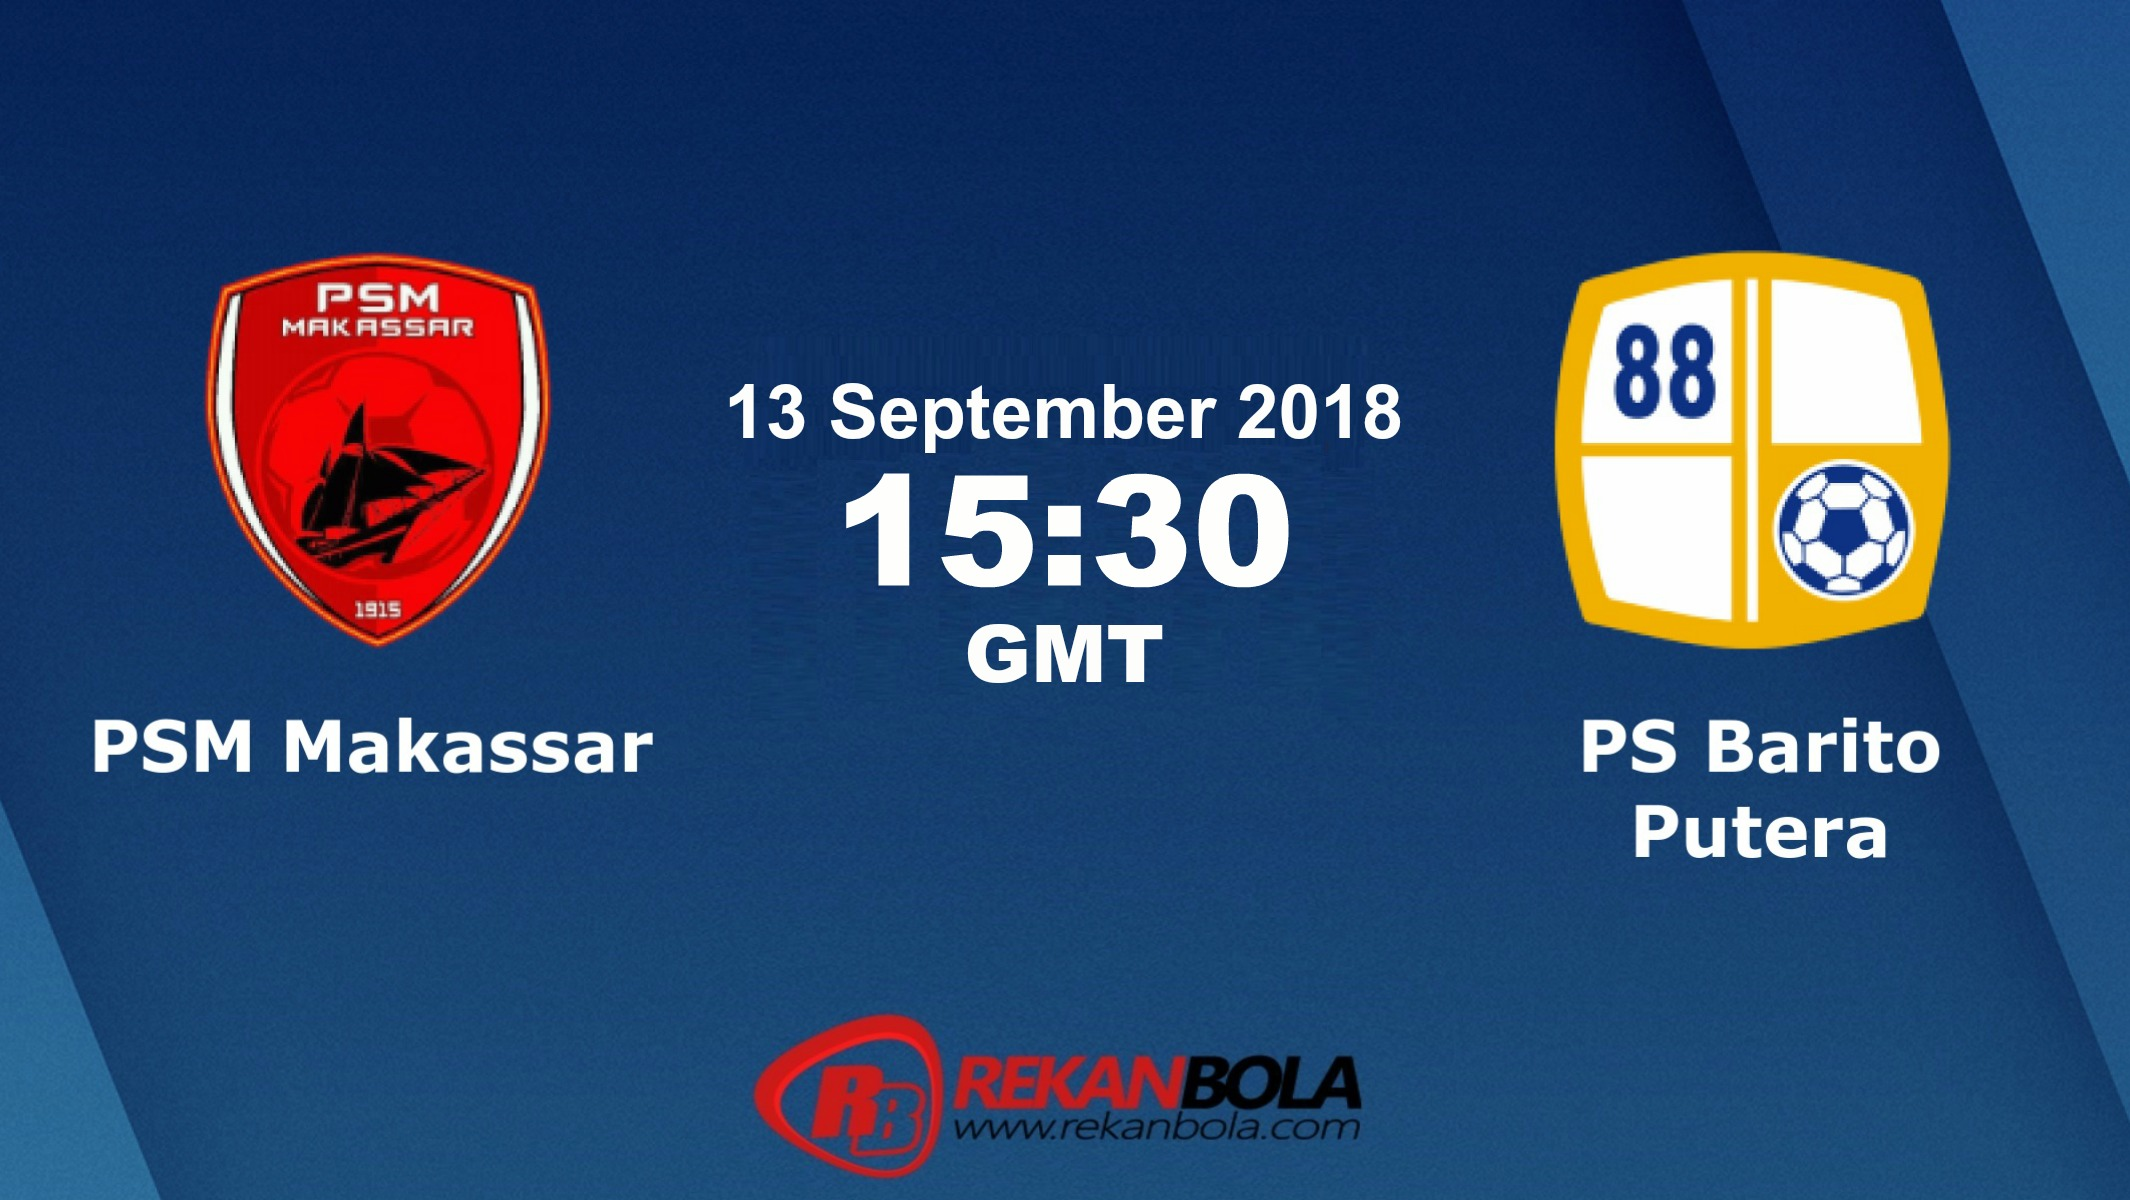 Nonton Siaran Live Streaming PSM Vs Barito 13 September 2018